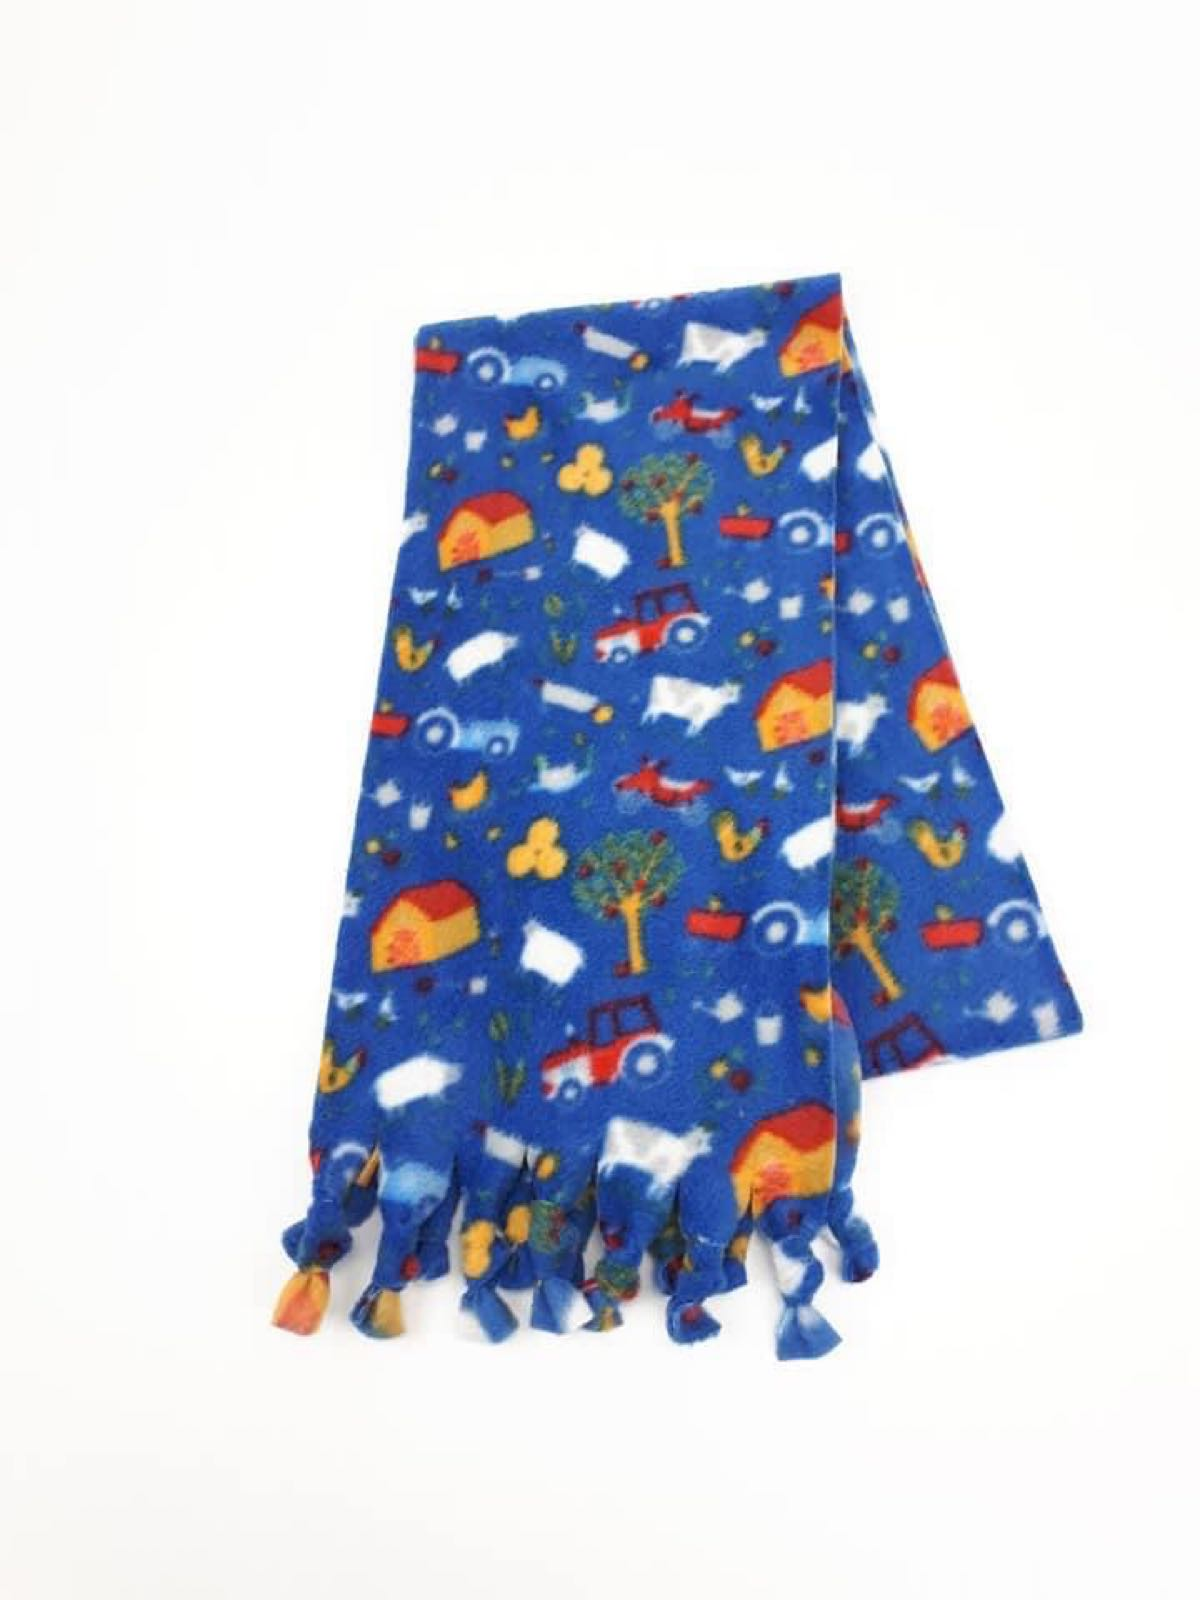 Playhouse Scarf